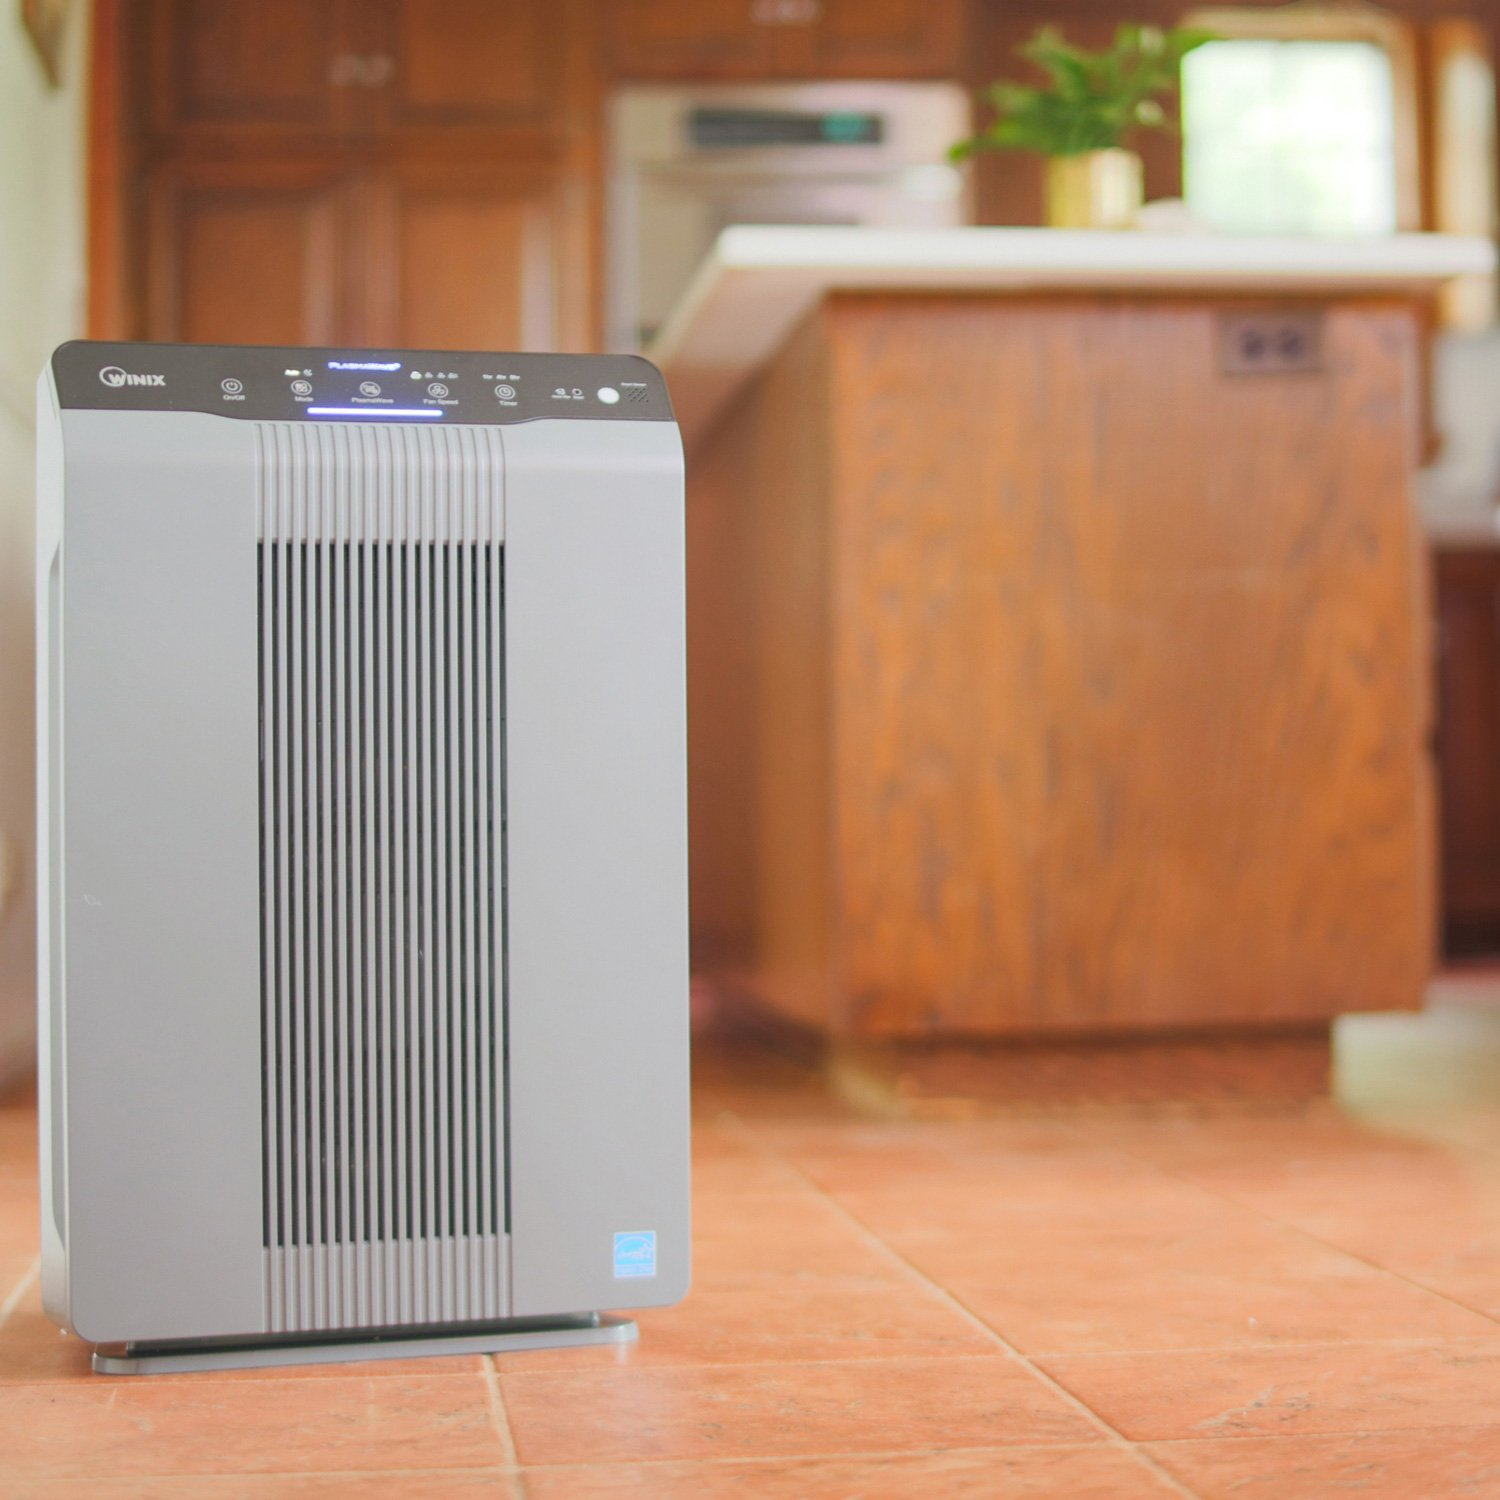 Top 10 Best Air Purifier For Baby Room Reviews & Buying Guide